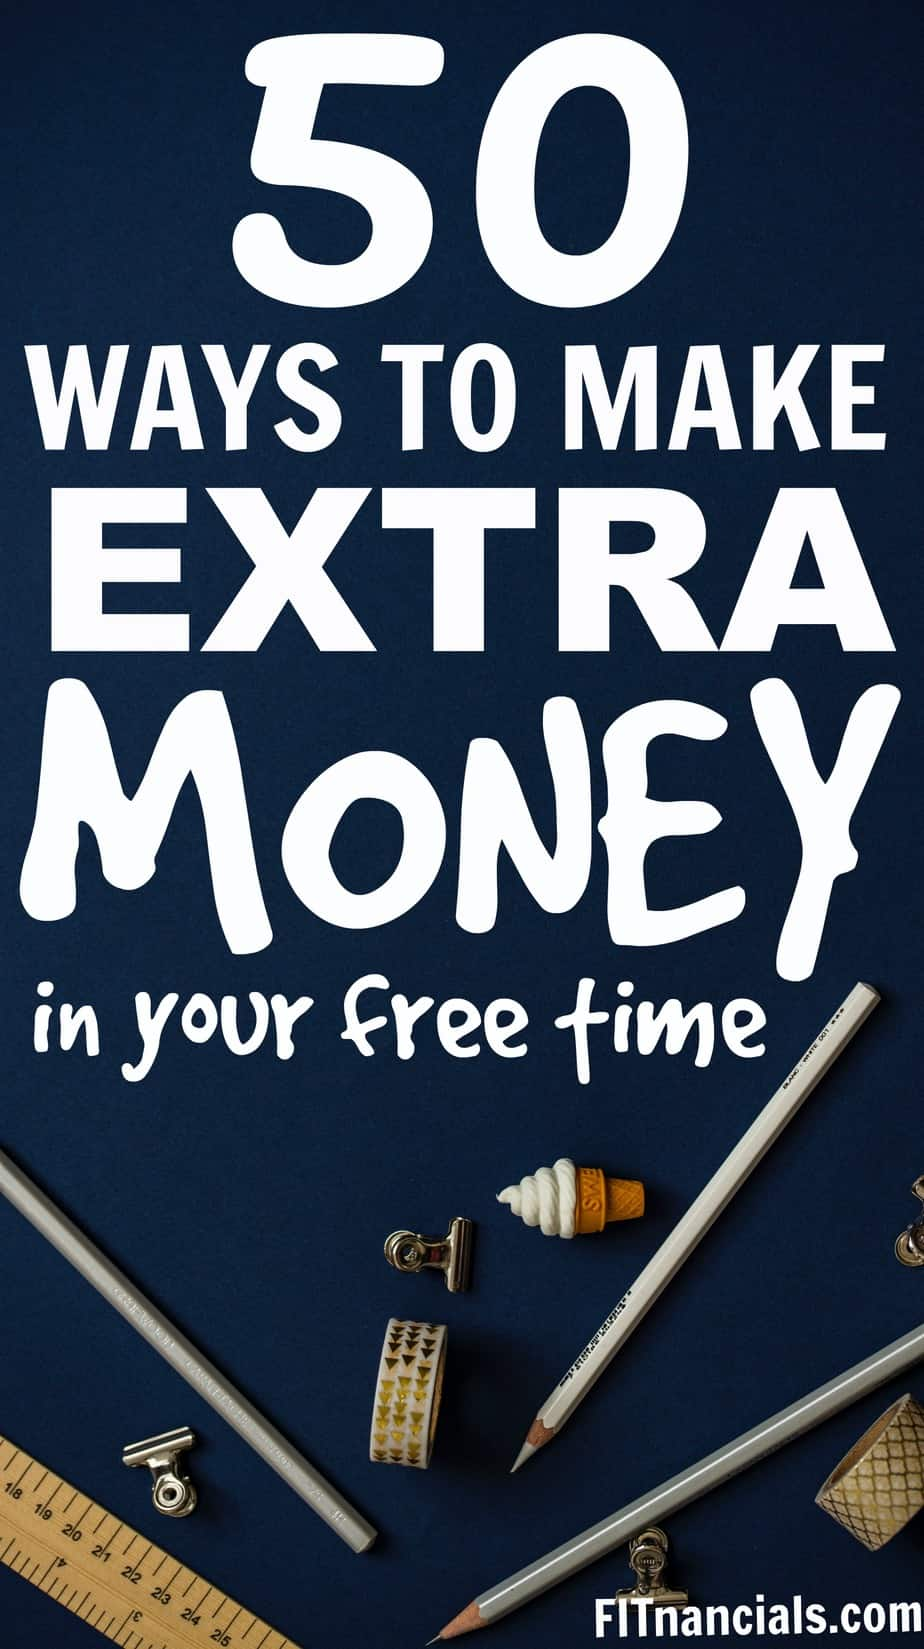 50+ ways to make extra money at home, online, or nearby. Check out this great list!